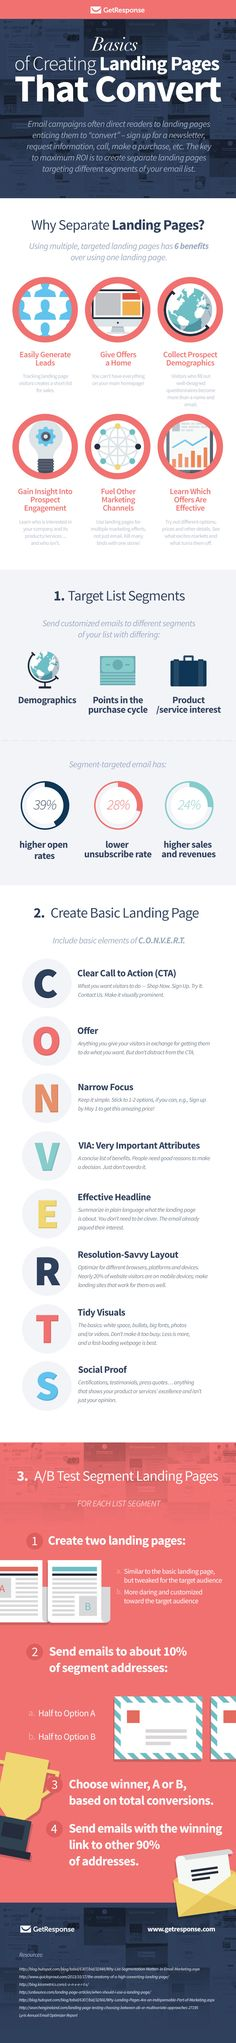 Send Your Email Subscribers to Different Landing Pages [Infographic]